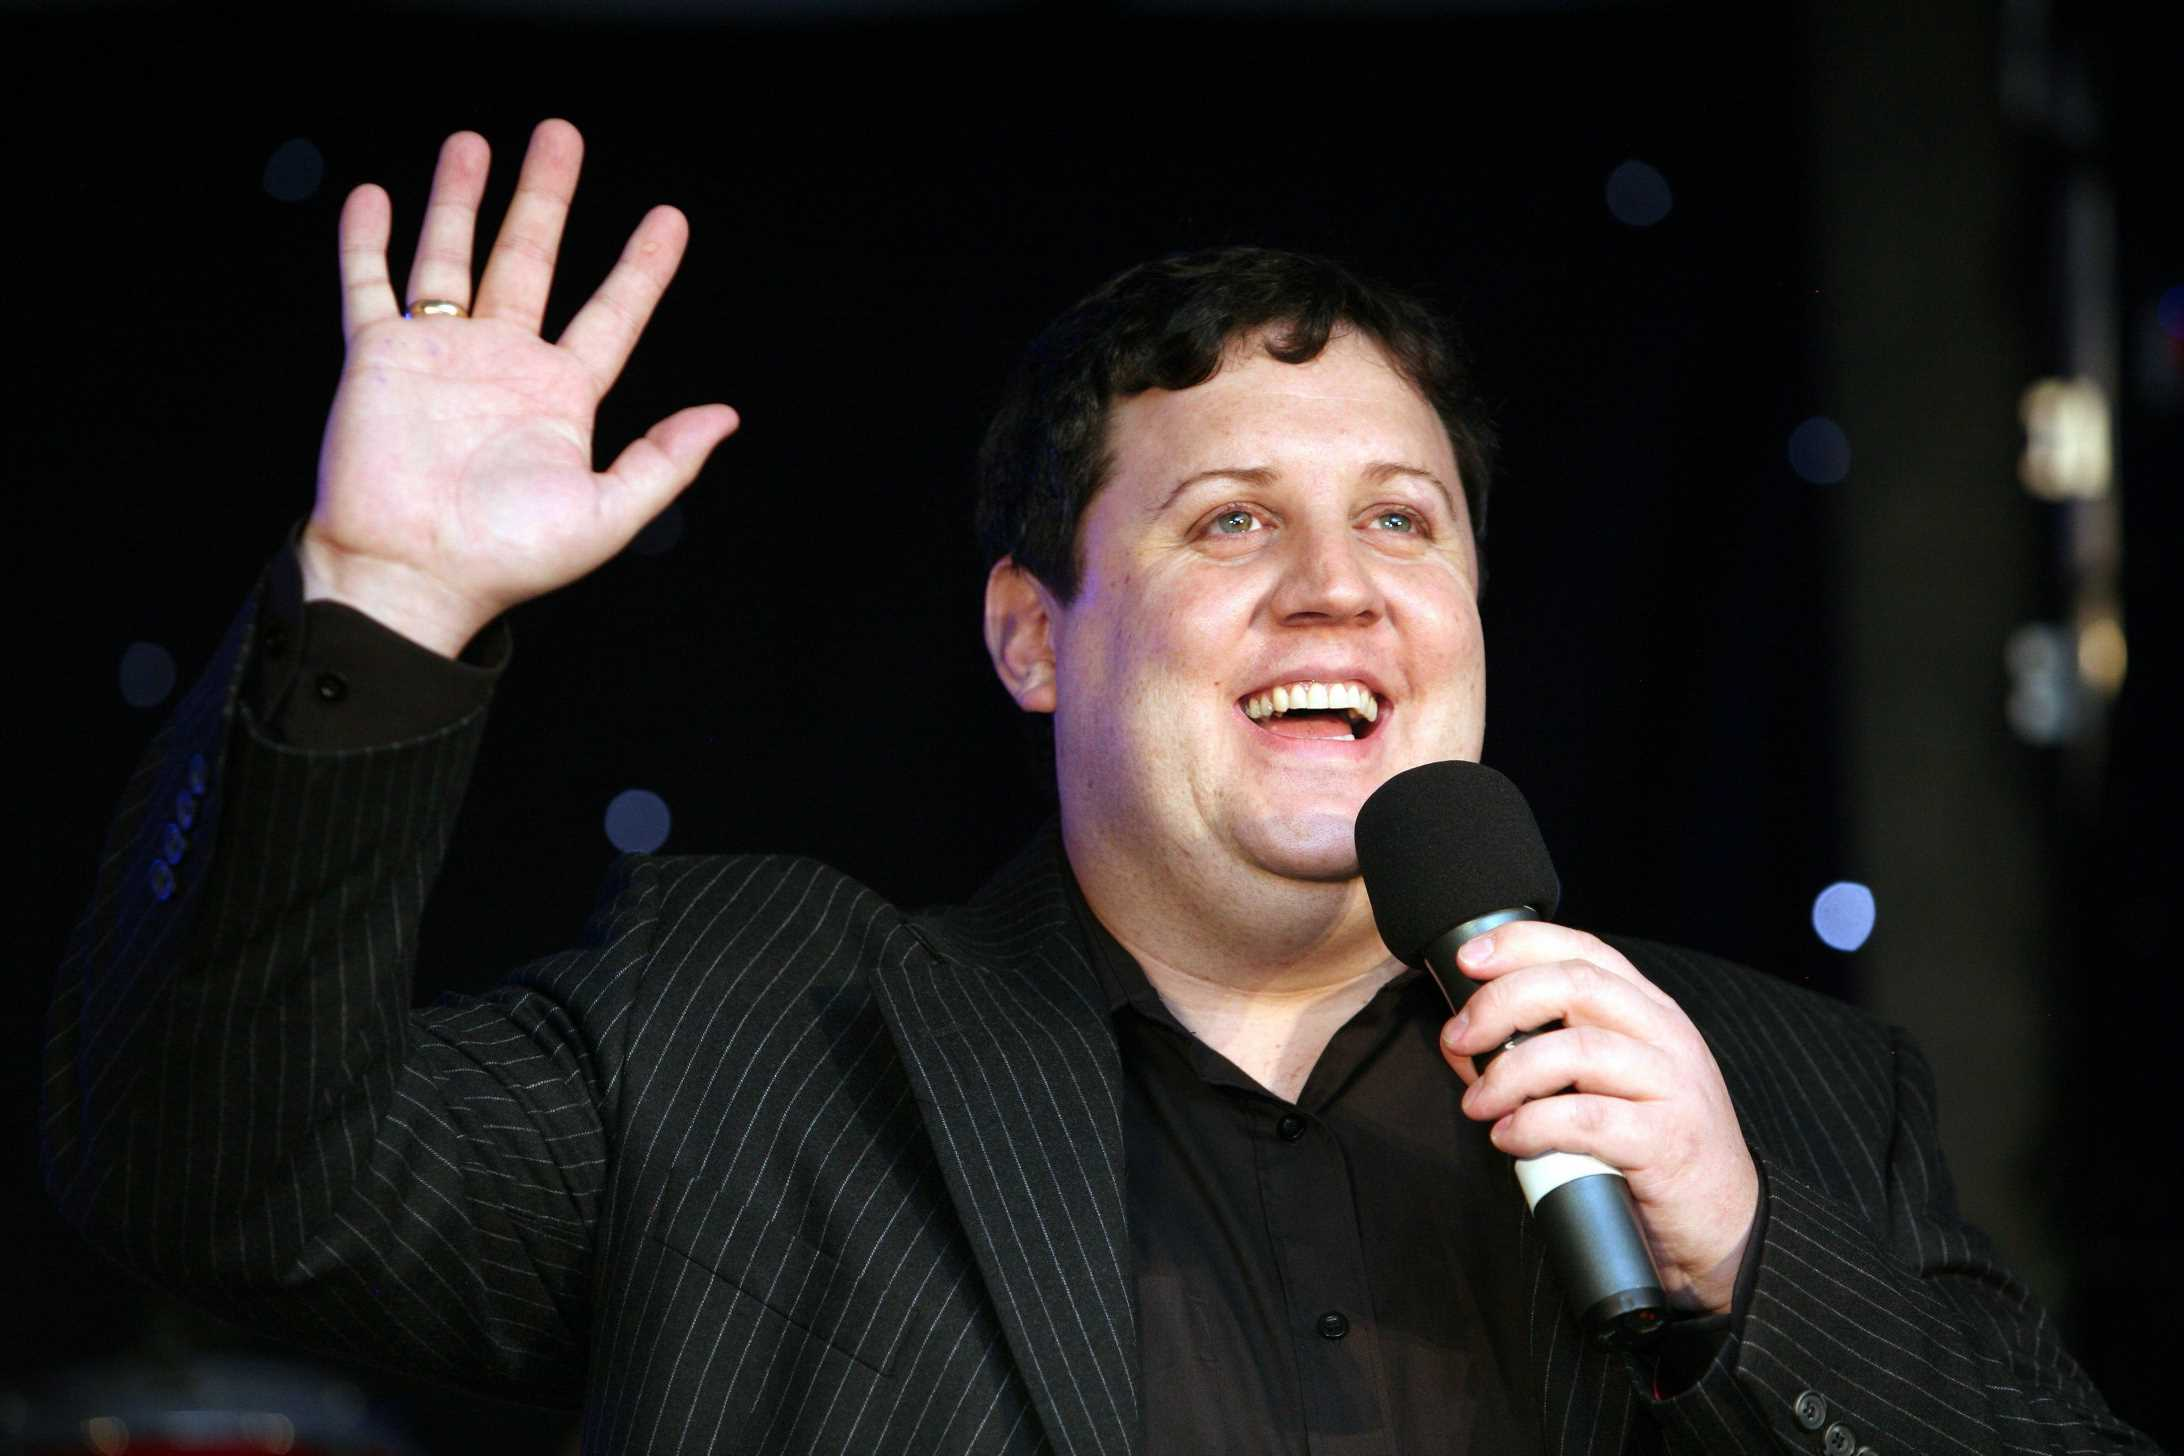 Peter Kay jokes 'I'm going away for four more years' after standing ovation from cheering crowds at long-awaited return